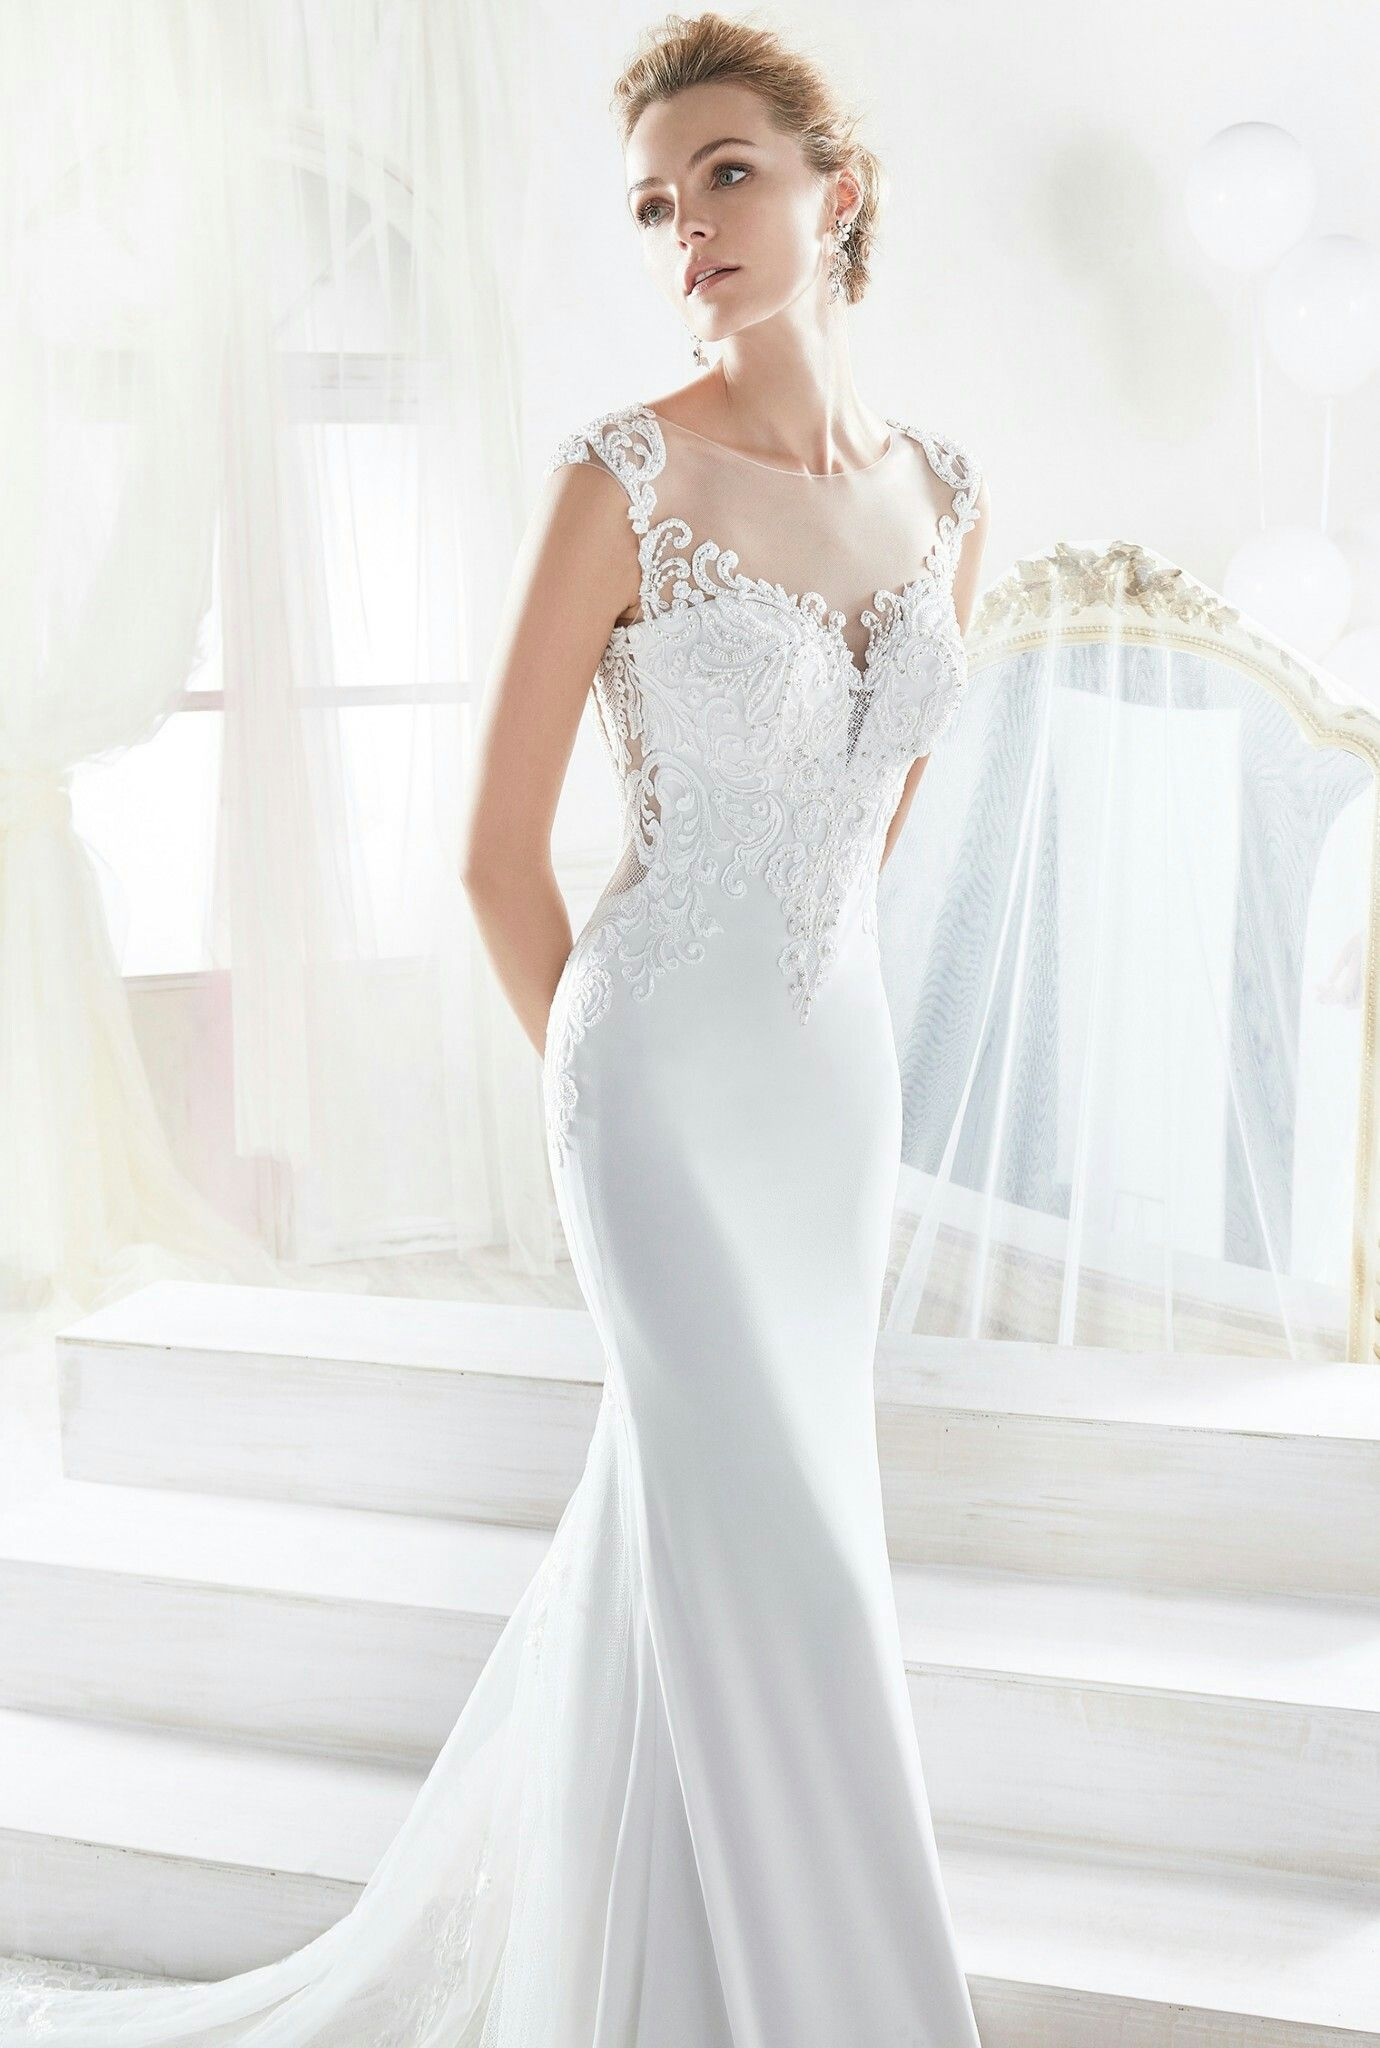 pin by lifon cheung on wedding gowns | wedding gowns